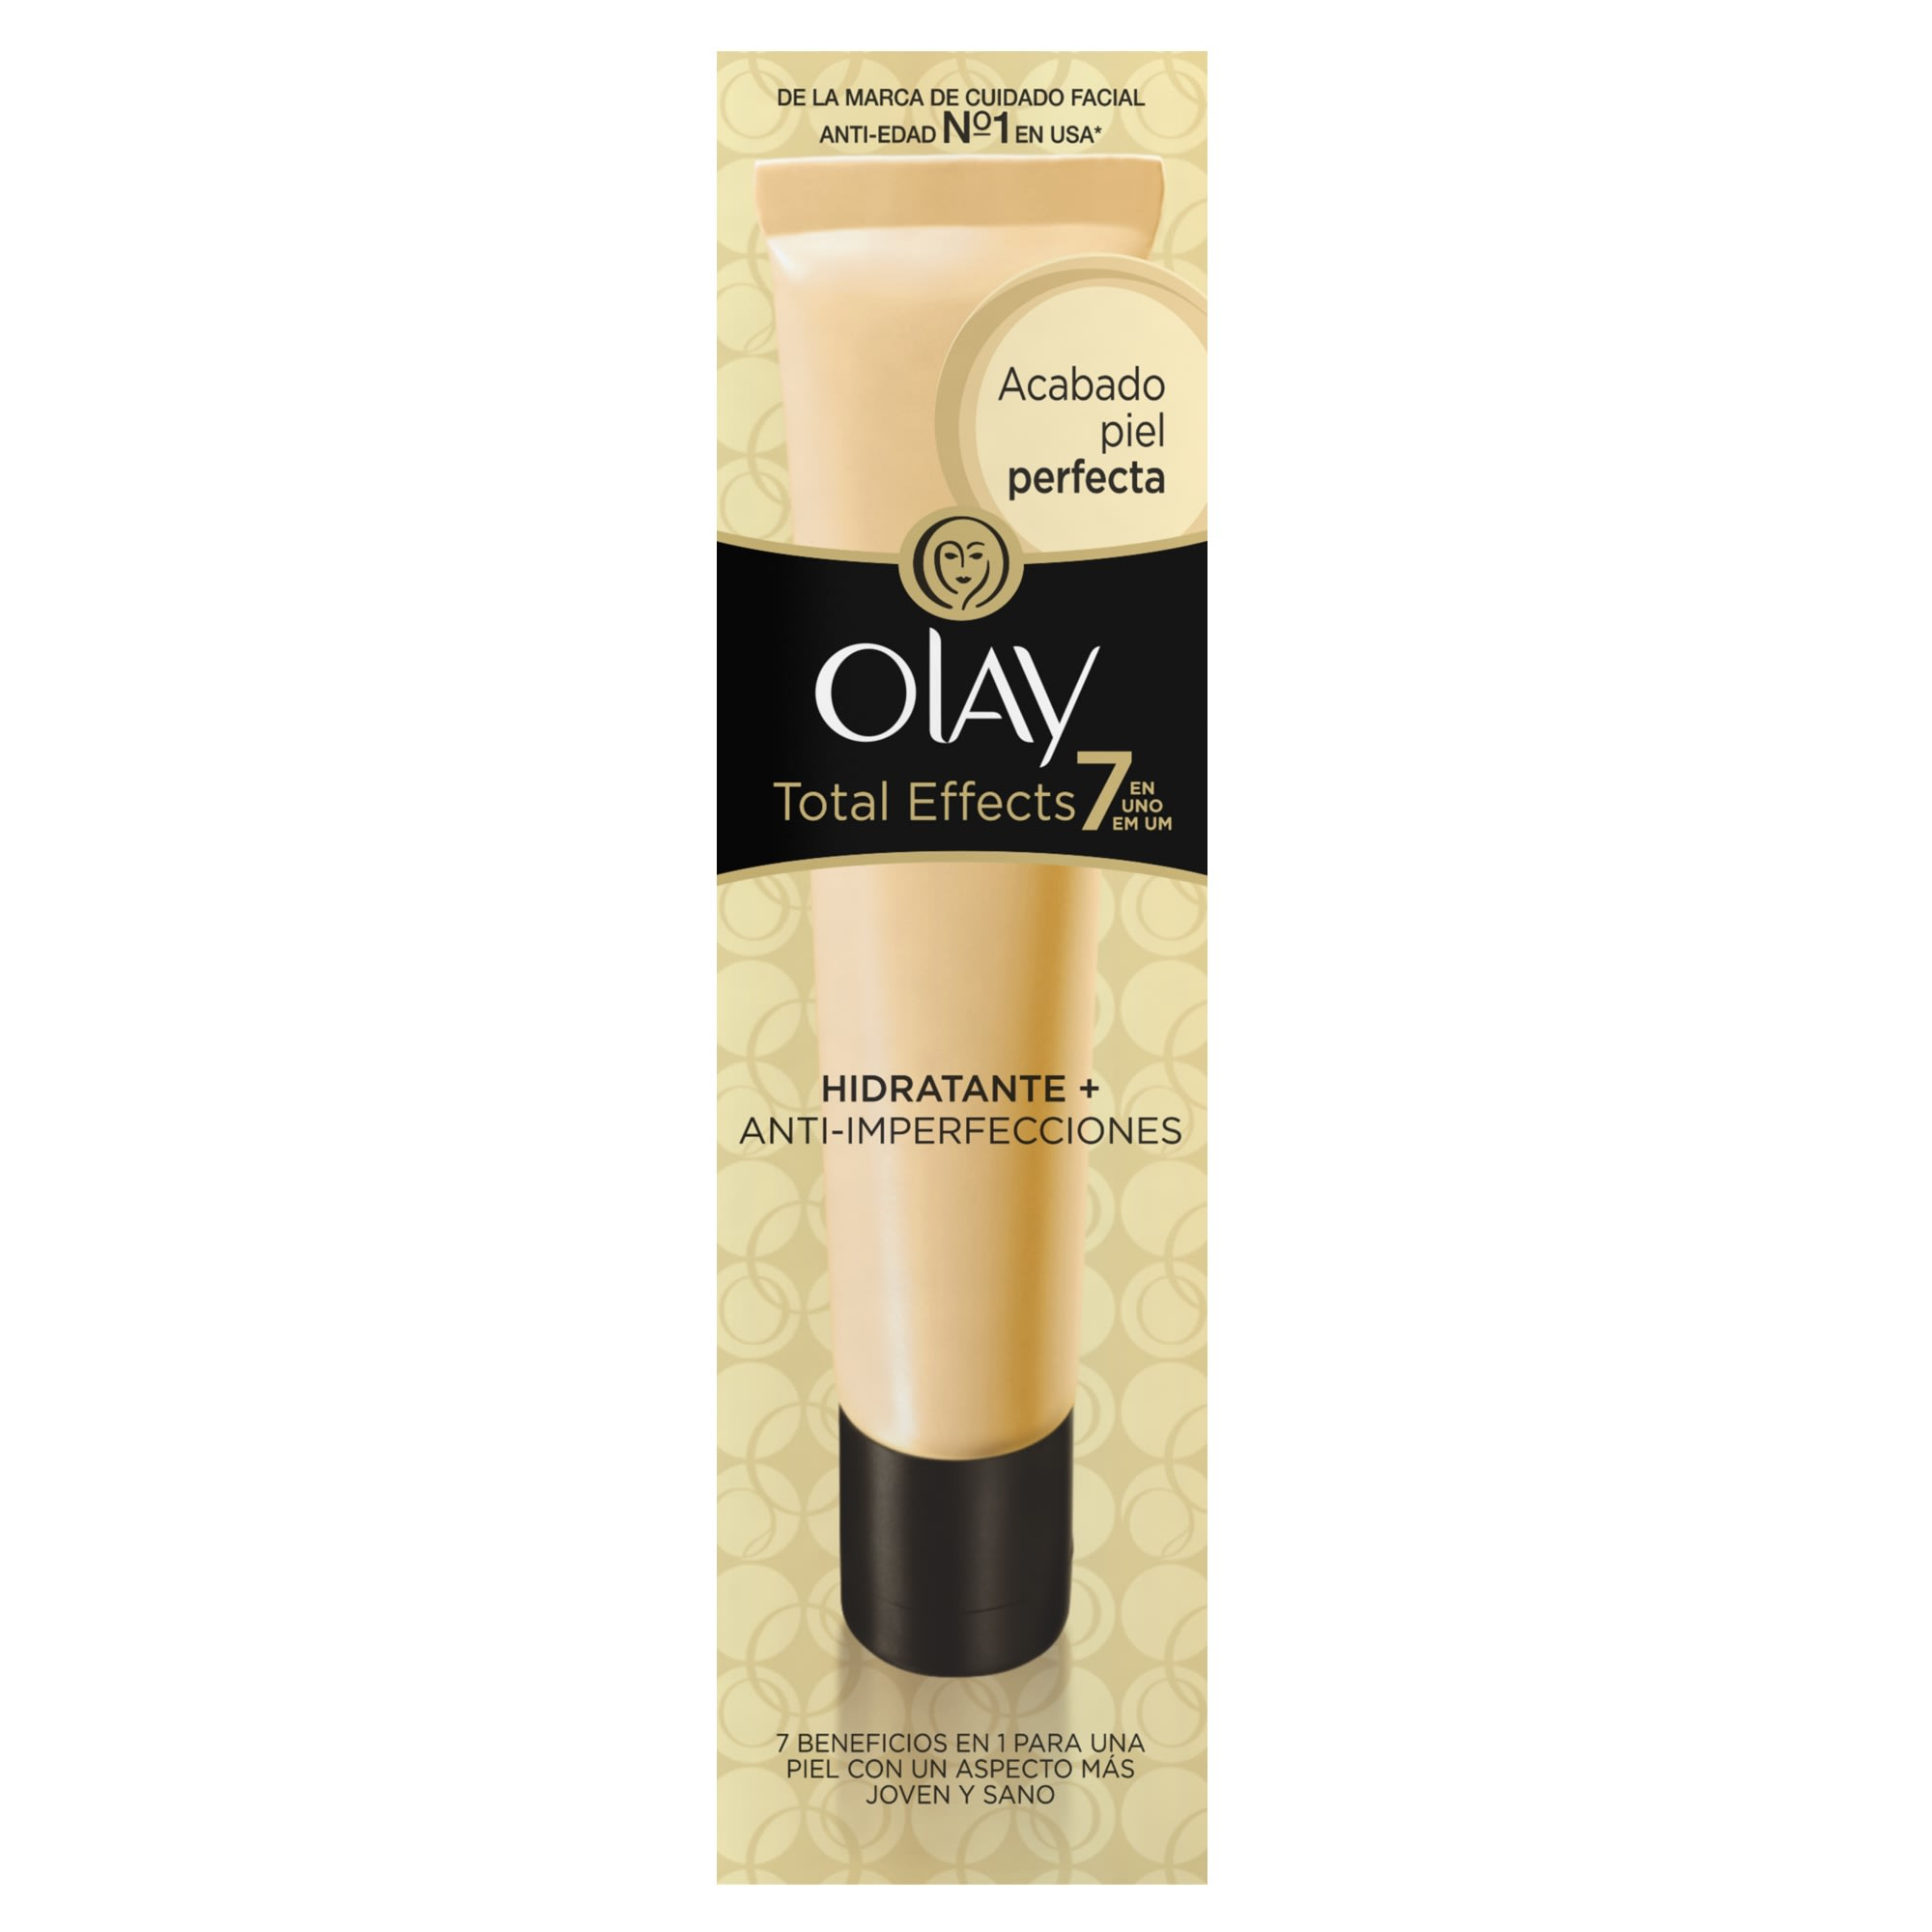 Olay Total Effects 7en1